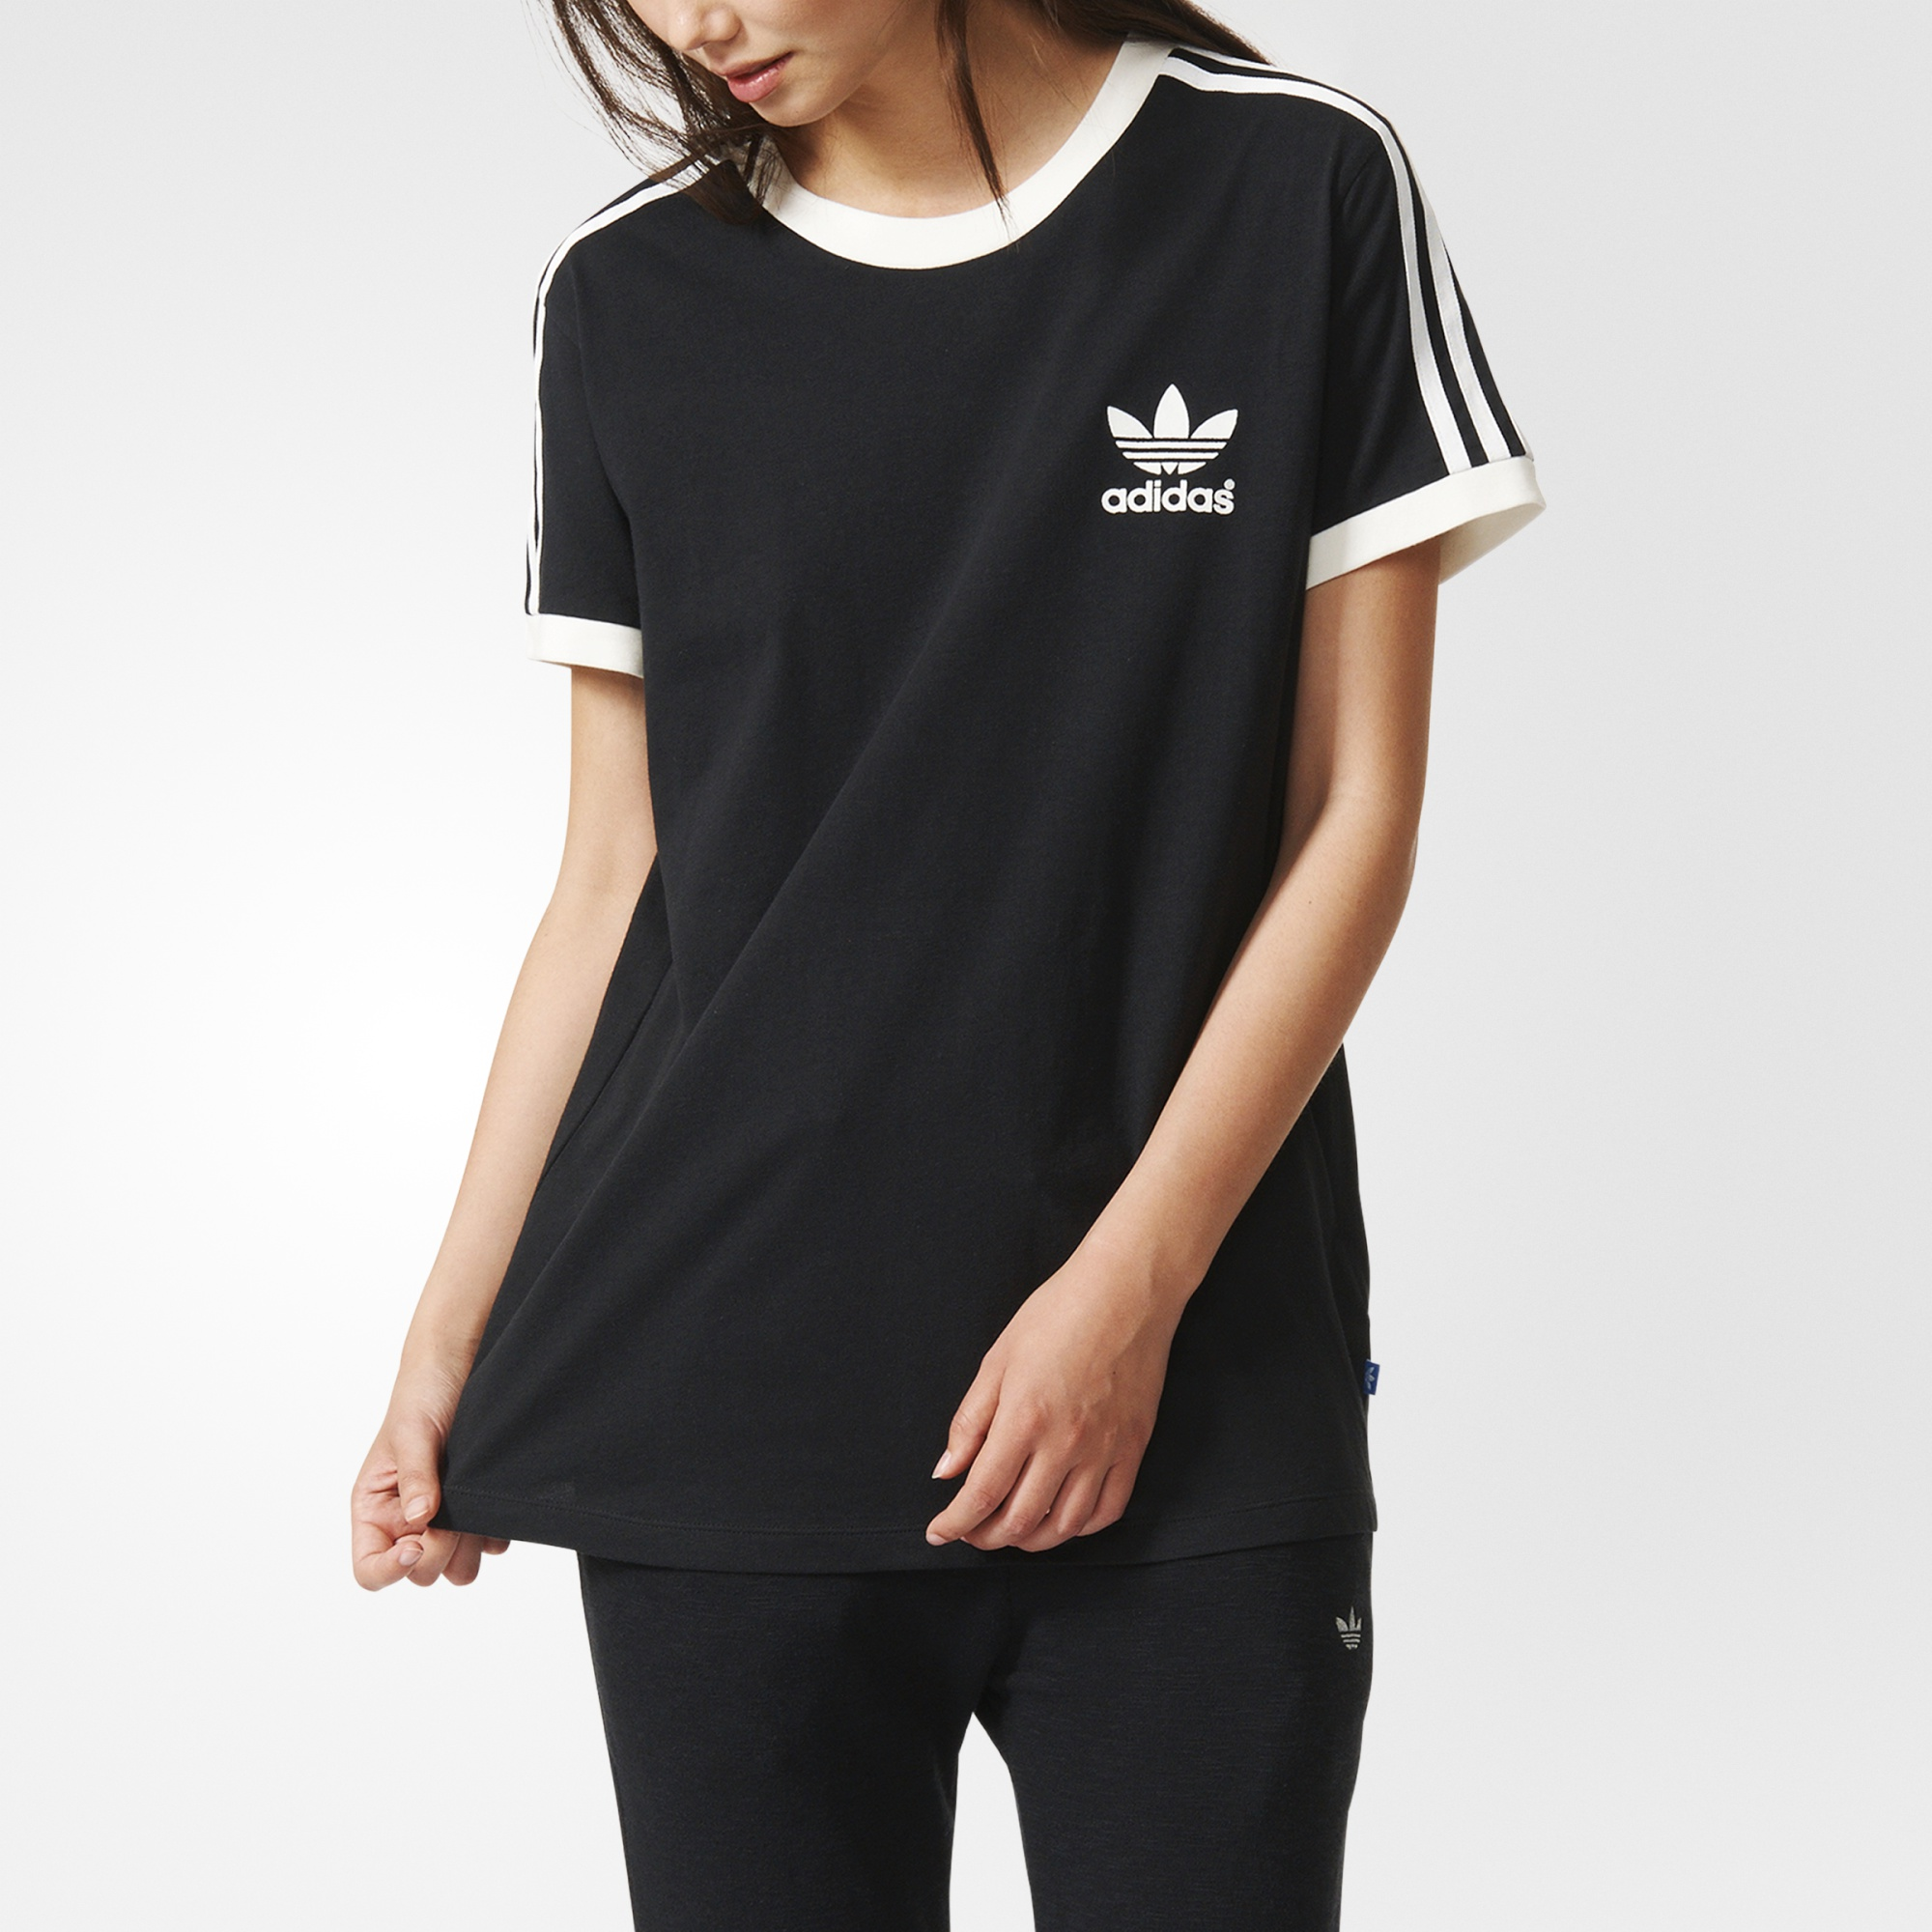 Adidas women 39 s 3 stripes tee black adidas canada for Womens black tee shirt